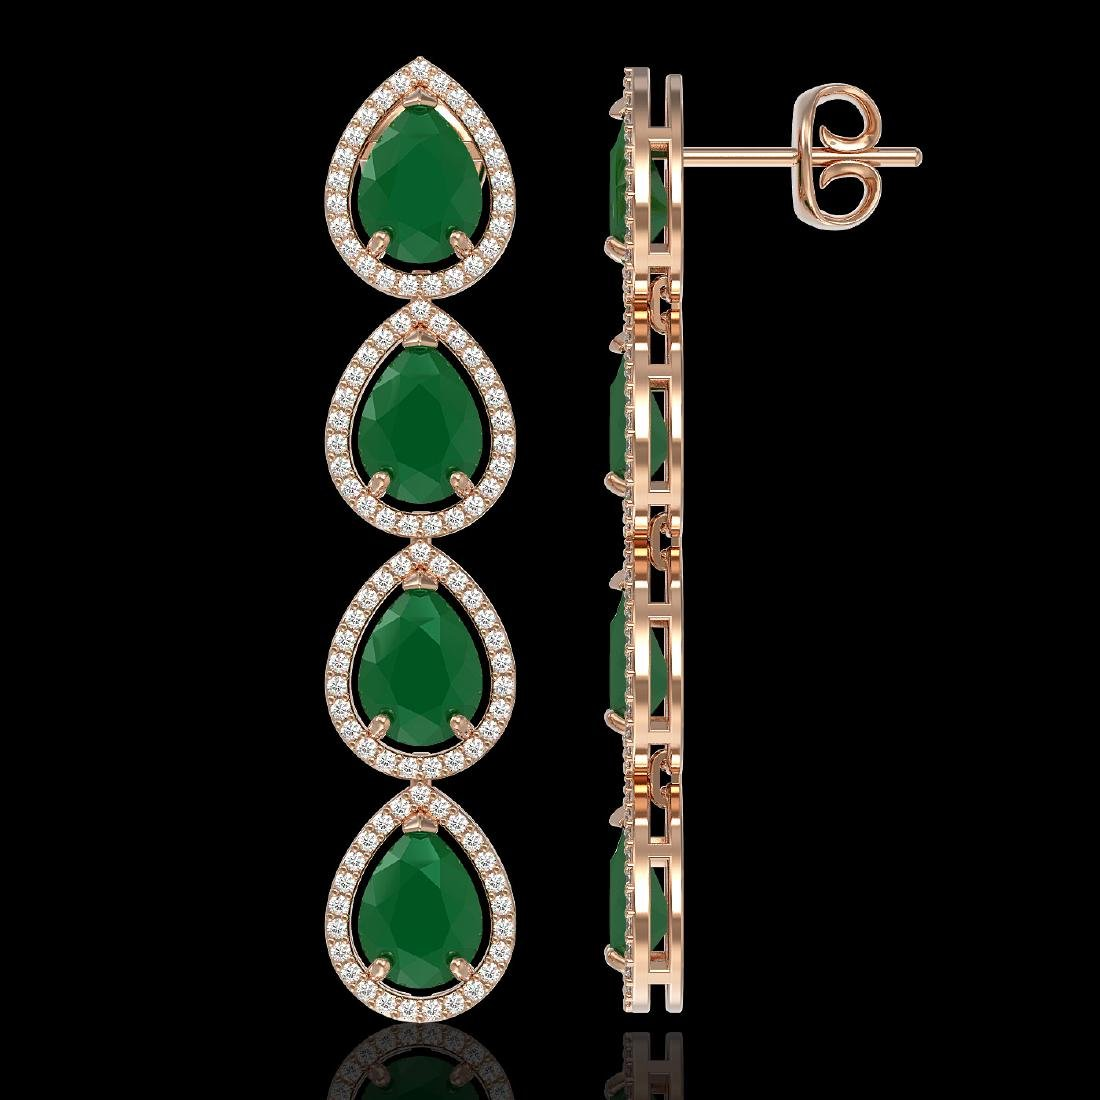 16.01 CTW Emerald & Diamond Halo Earrings 10K Rose Gold - 2